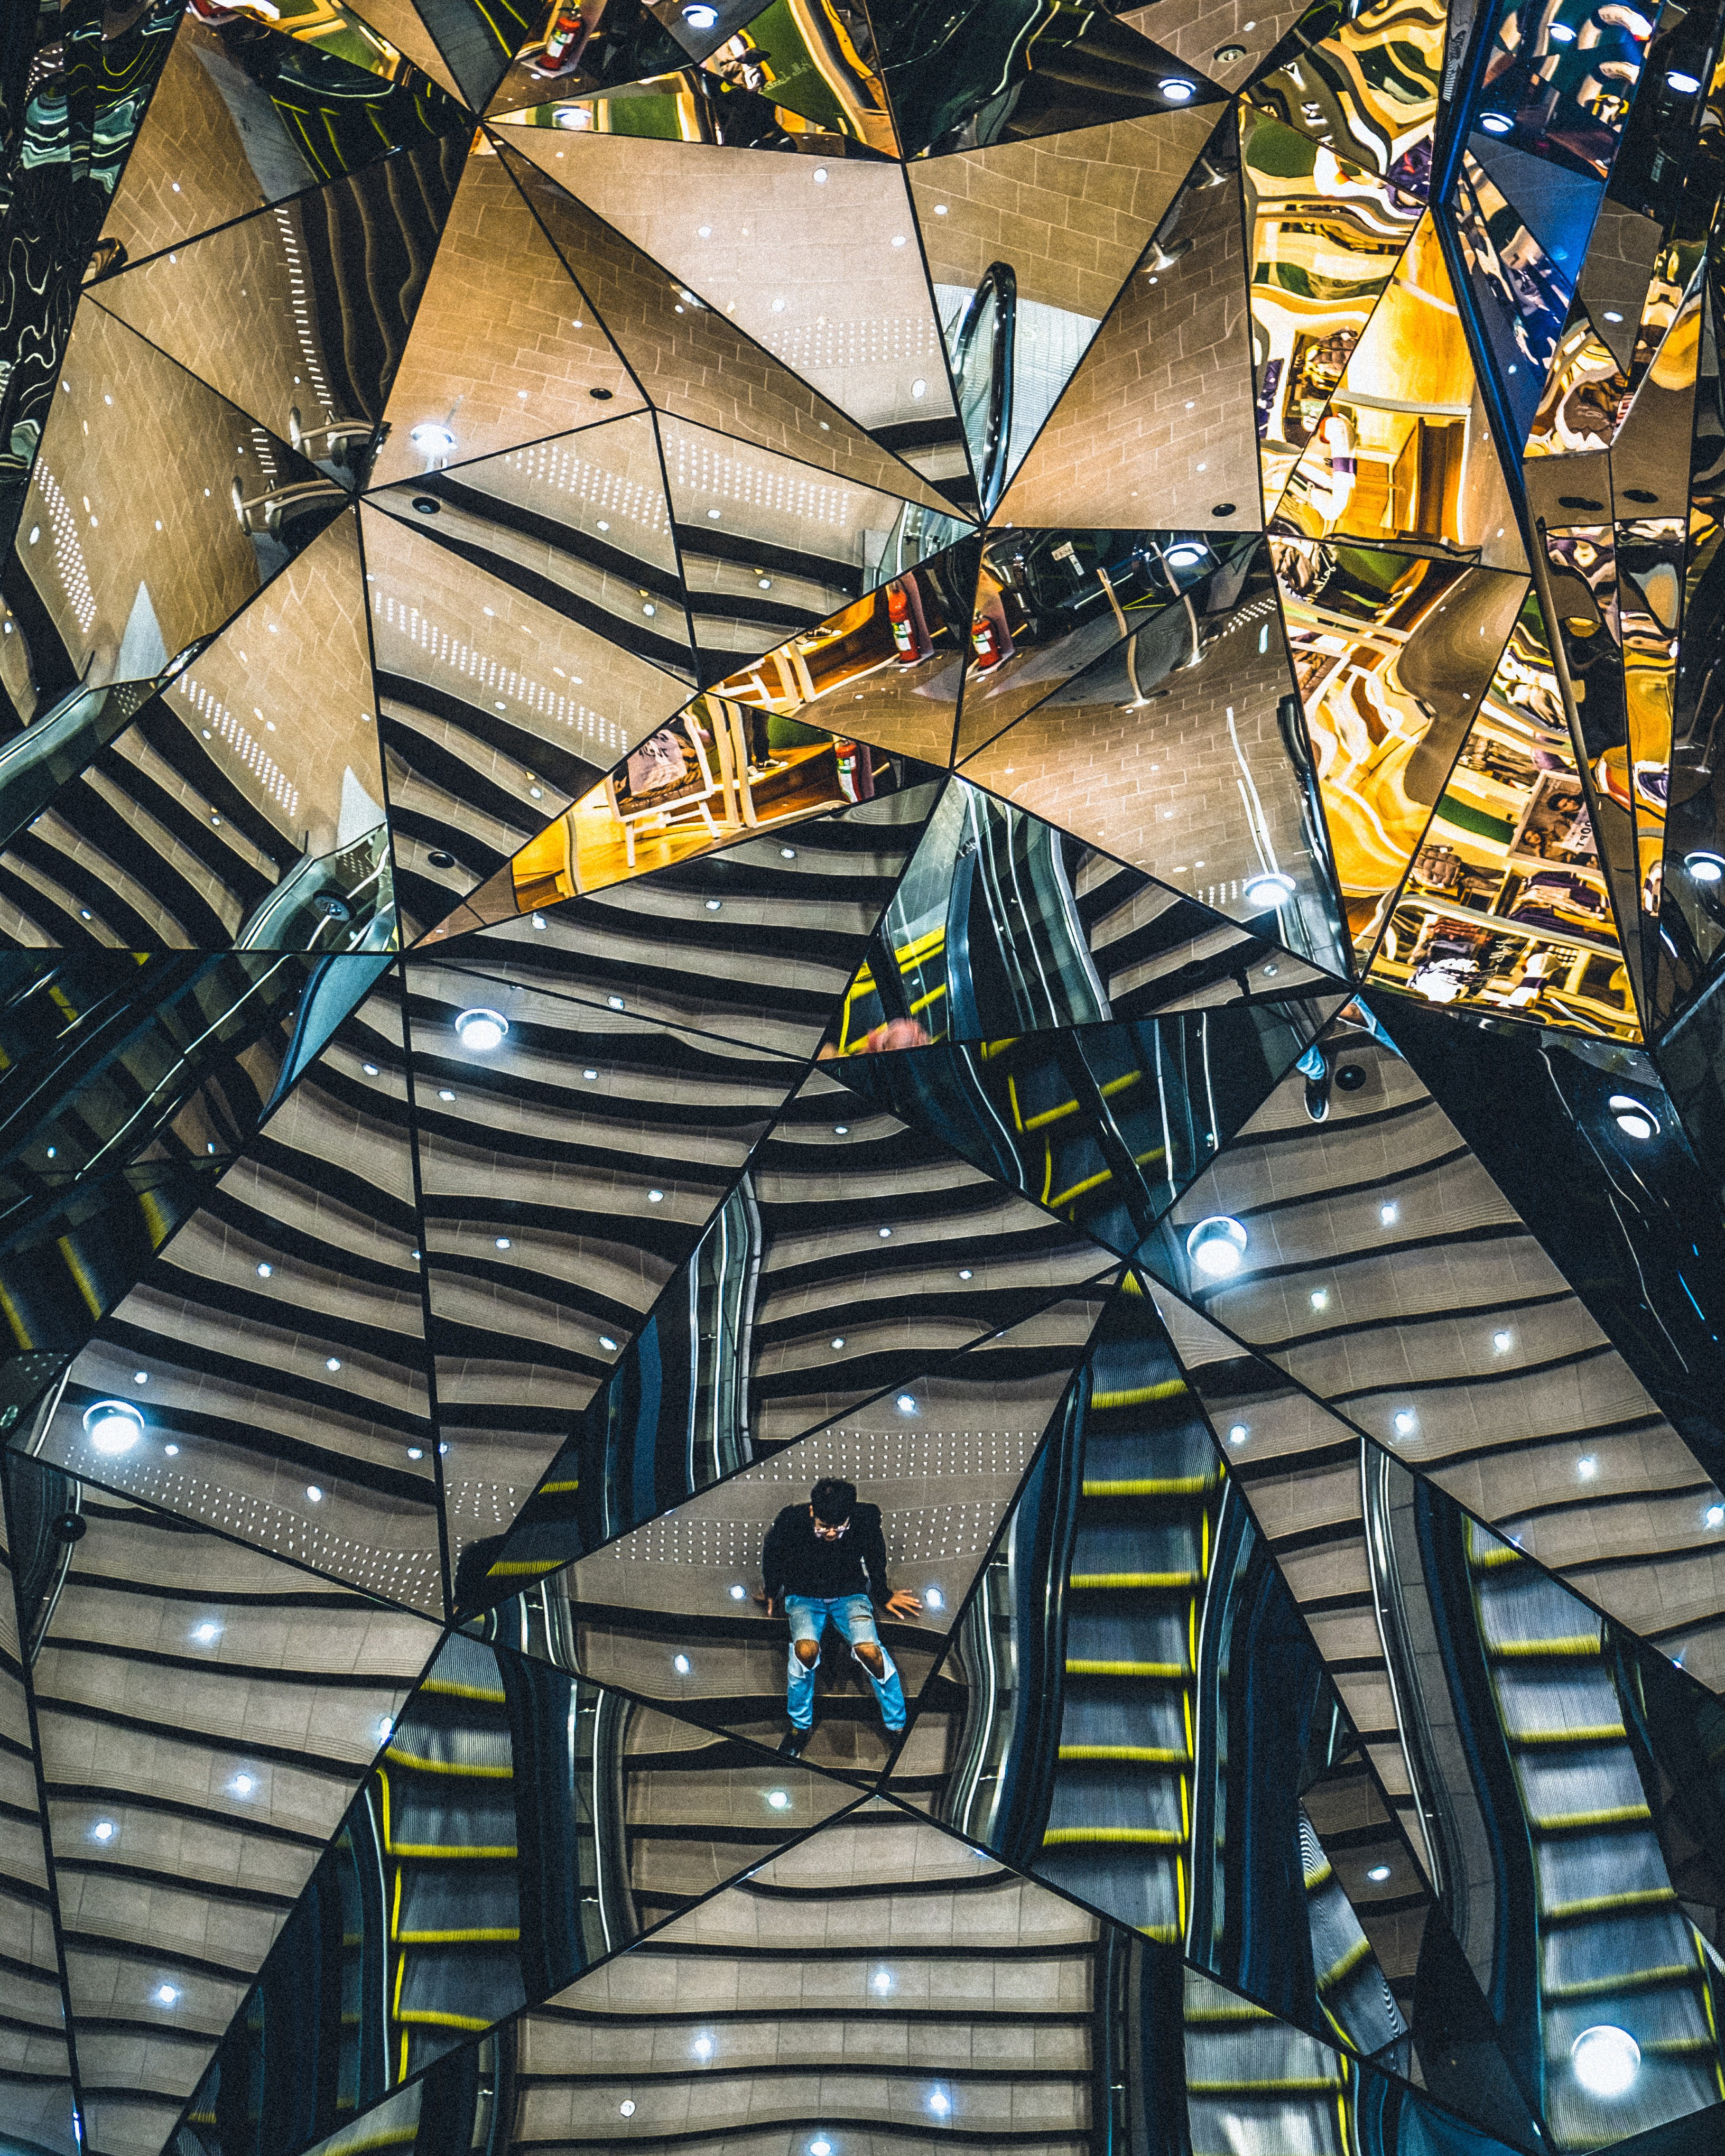 Mirror of geometric shapes, reflecting an abstracted set of stairs and benches with people on them.